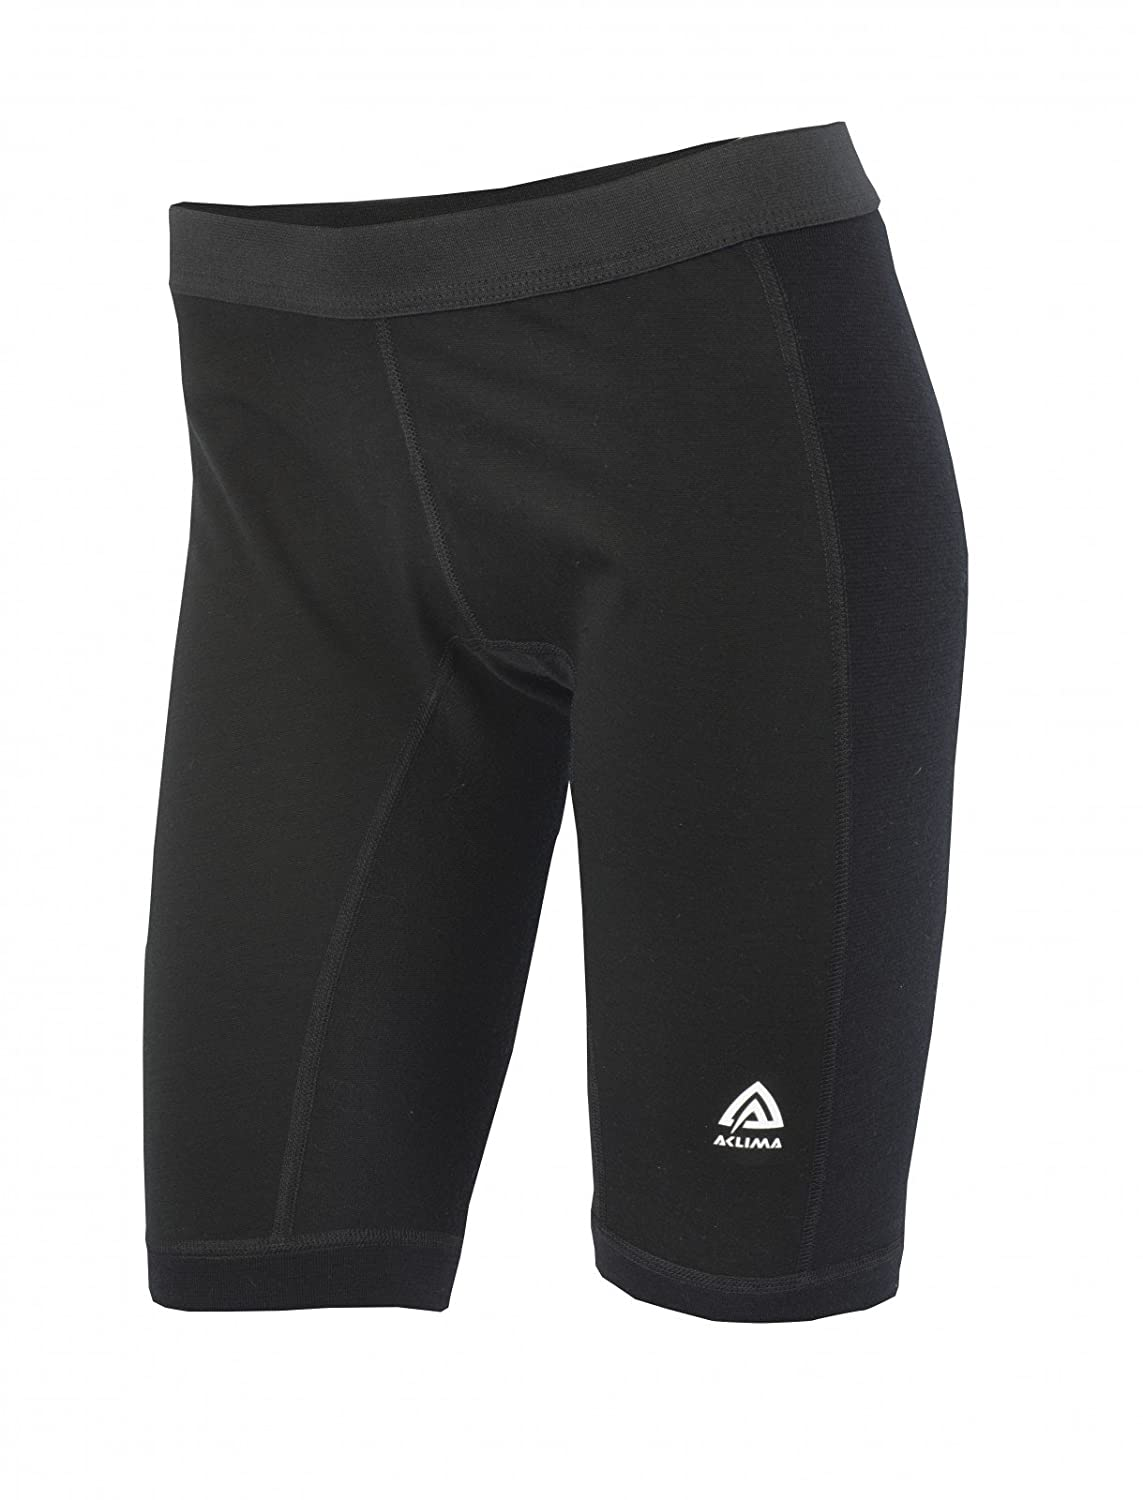 Aclima WarmWool Long Shorts Damens with Windstop Jet schwarz 2018 Unterwäsche